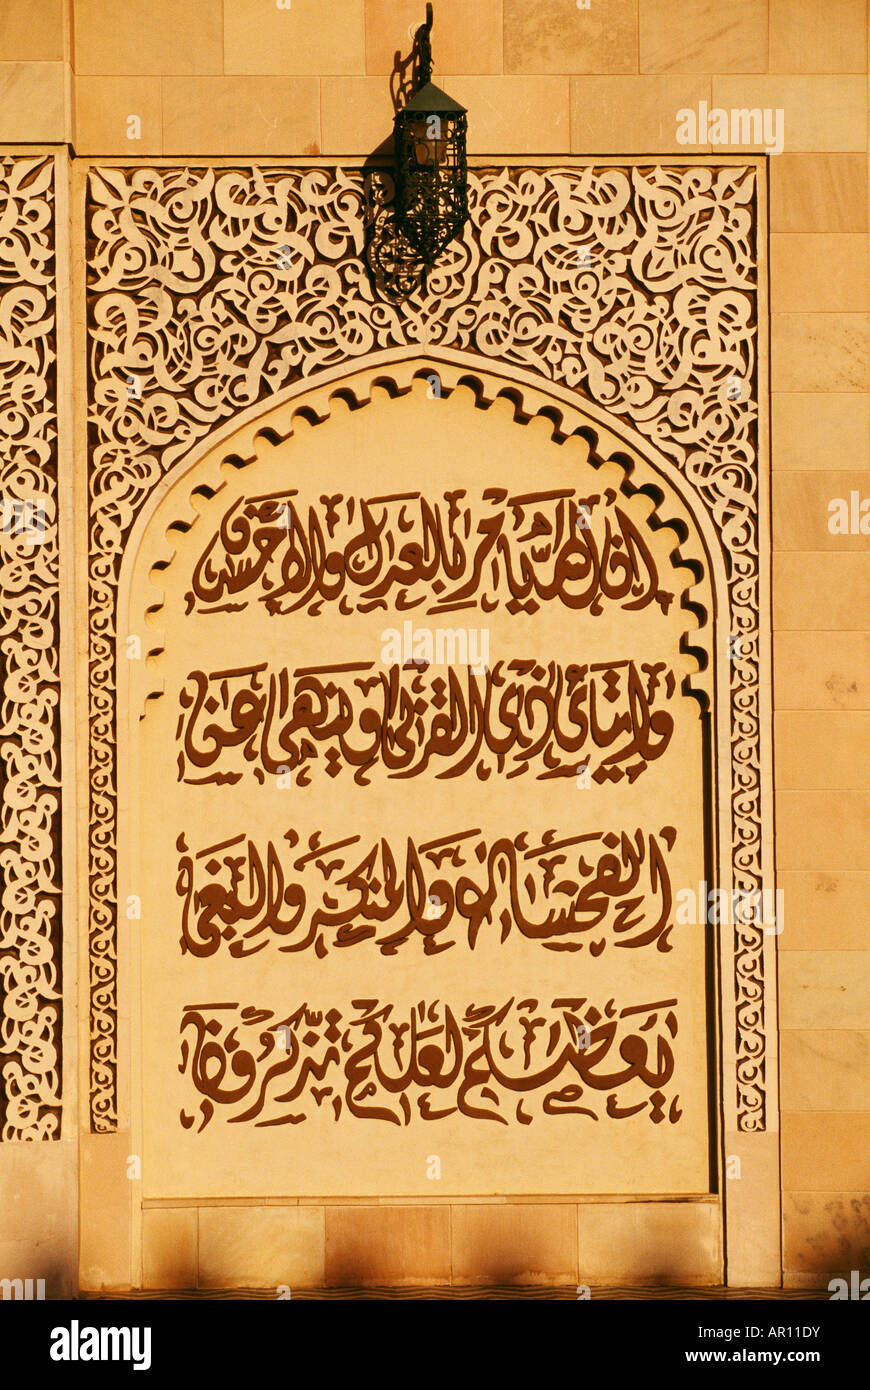 A lamp is seen above a scripture in Urdu on a wall. - Stock Image